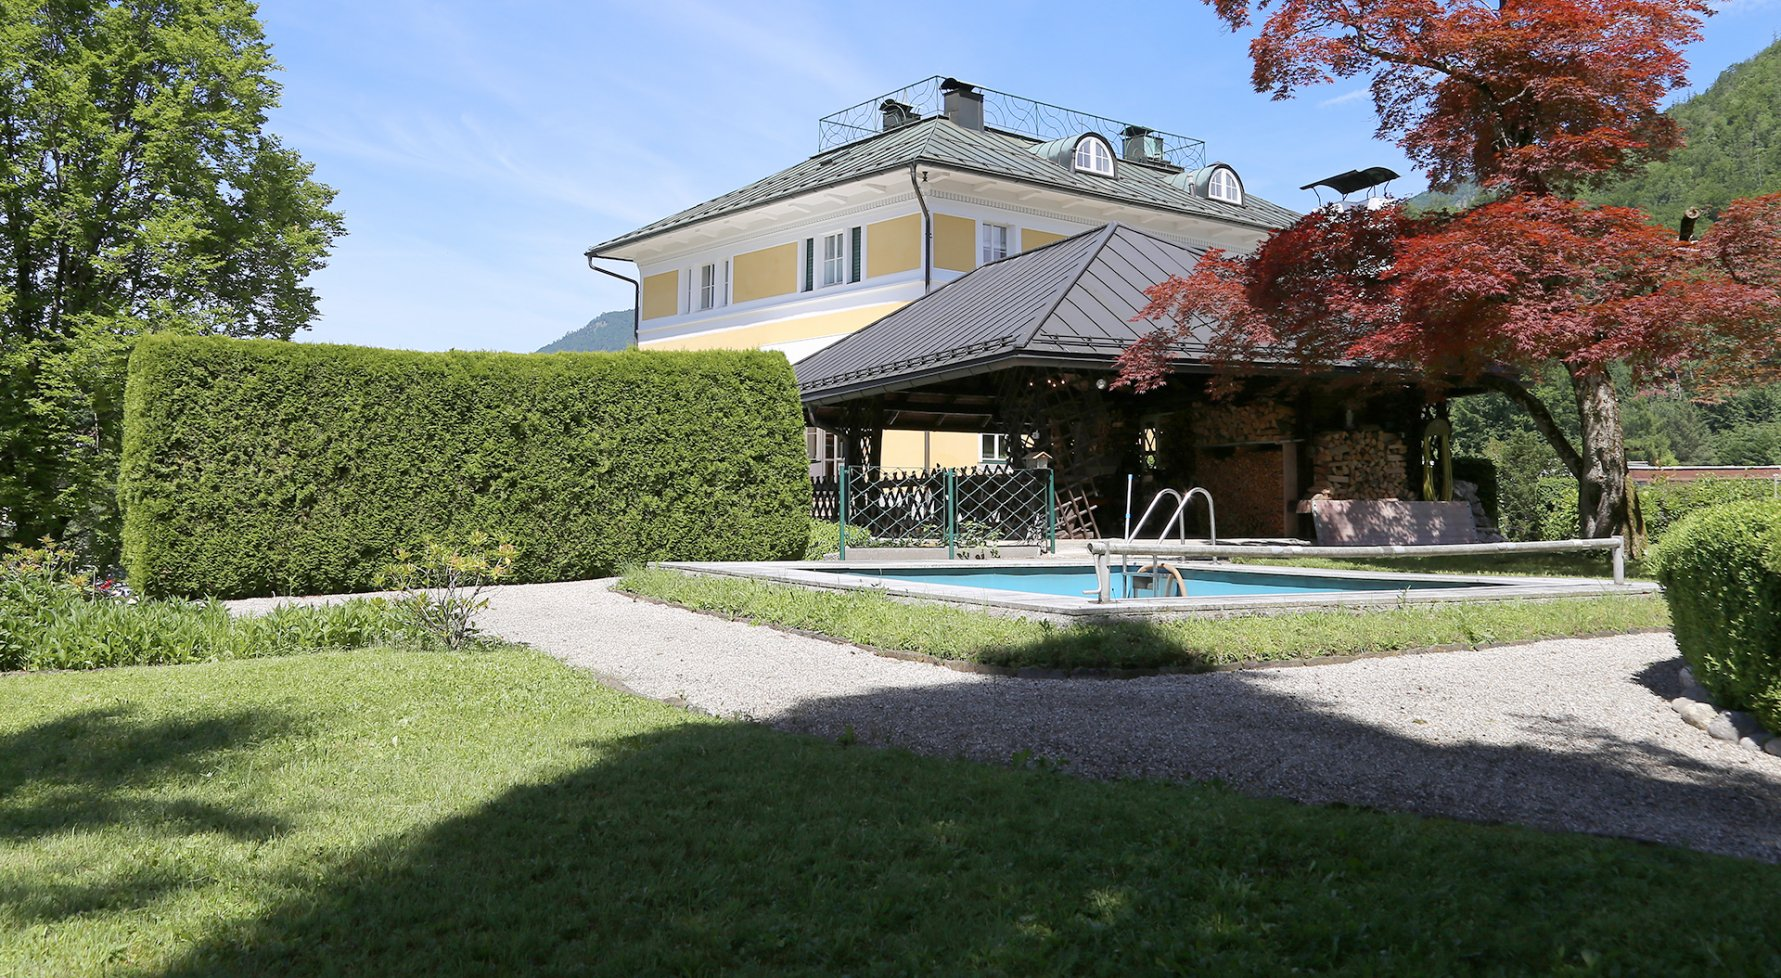 Property in 4820 Bad Ischl: Elegance of the highest class! Fairytale castle in the middle of the imperial city - picture 1